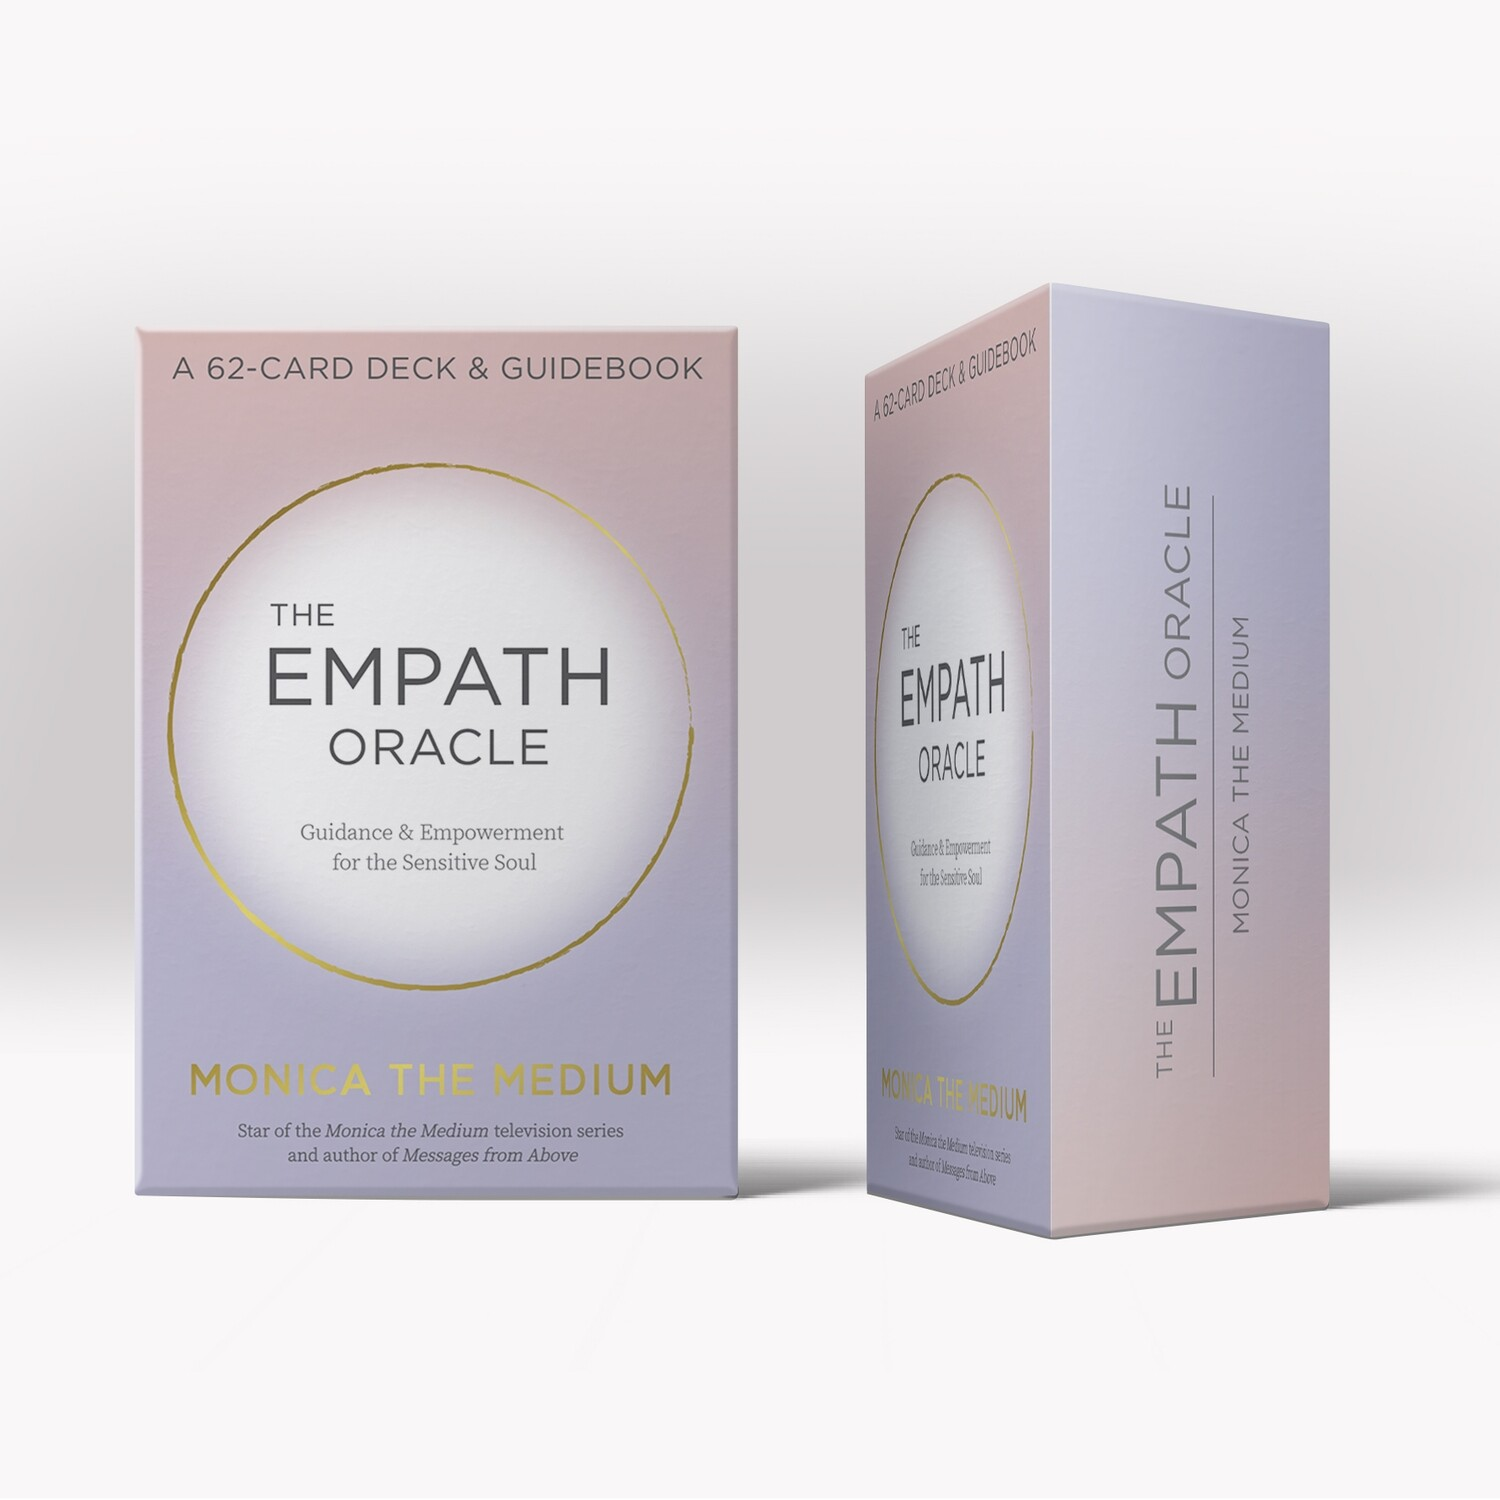 The Empath Oracle